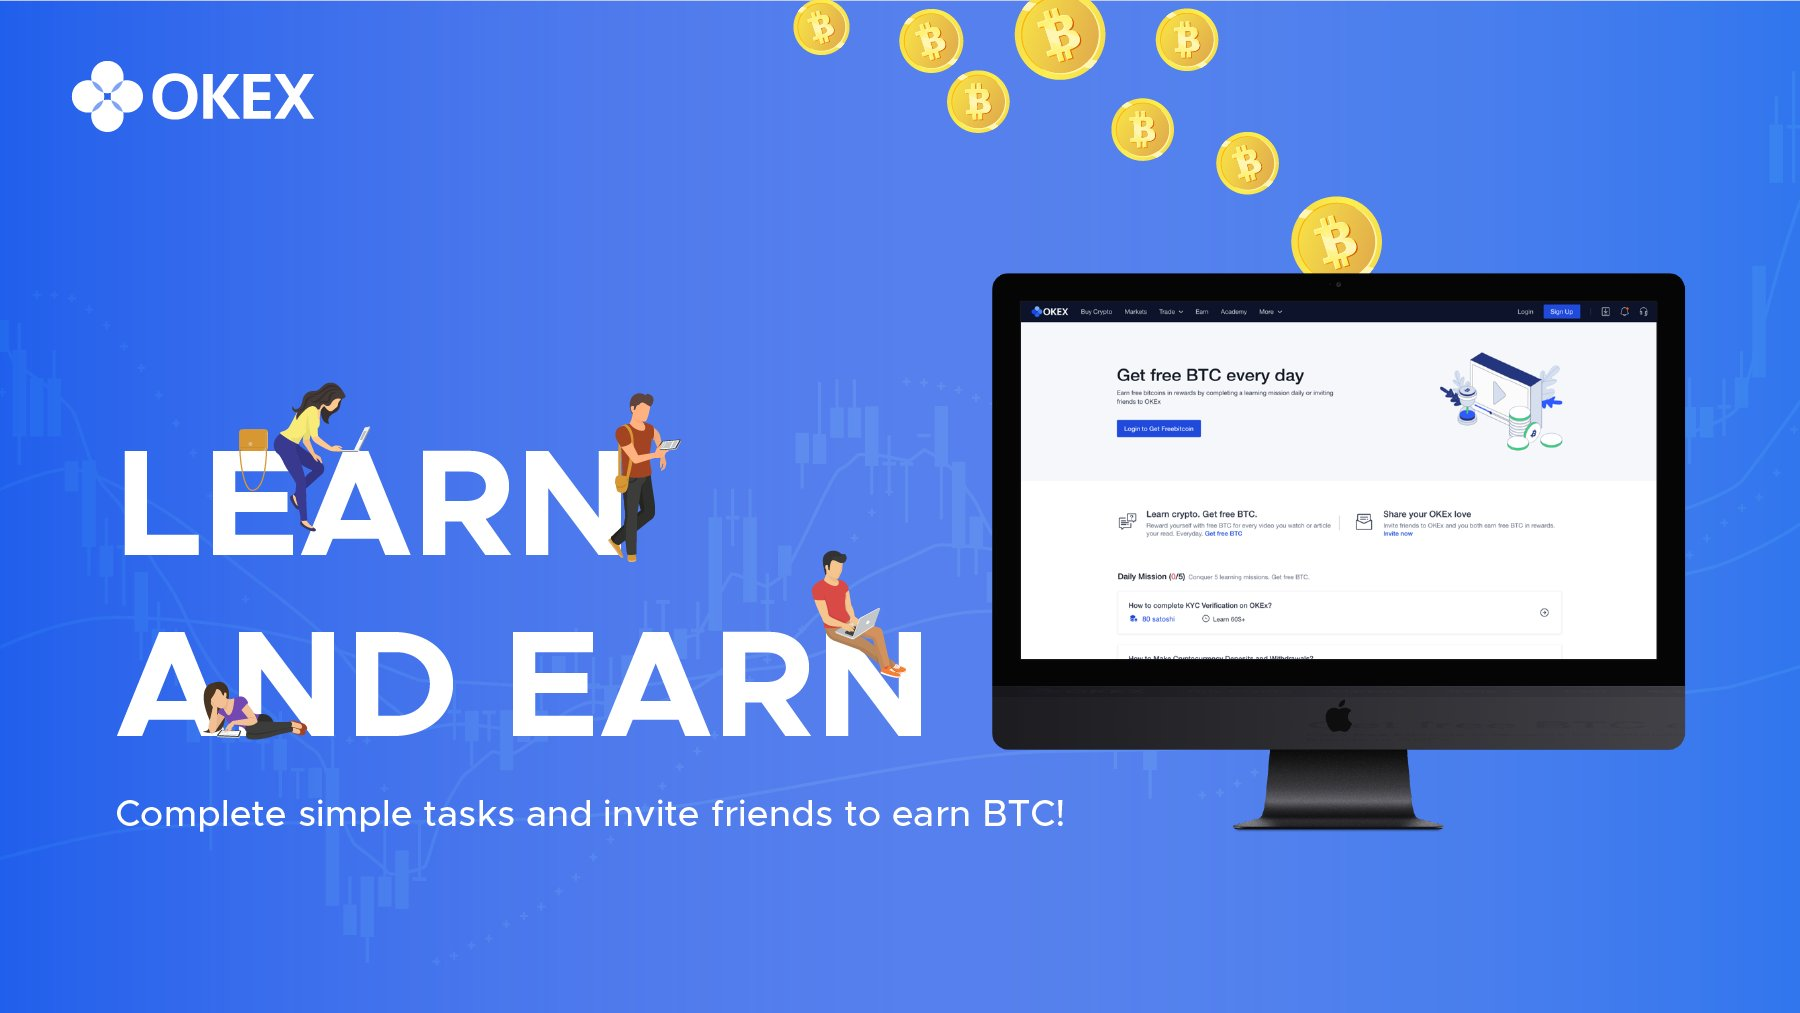 """OKEx on Twitter: """"LEARN & EARN: What's better than learning about #crypto,  #blockchain & @OKEx products? Earning #Bitcoin at the same time 💰!  Complete daily learning missions by reading/ watching tutorials on #"""